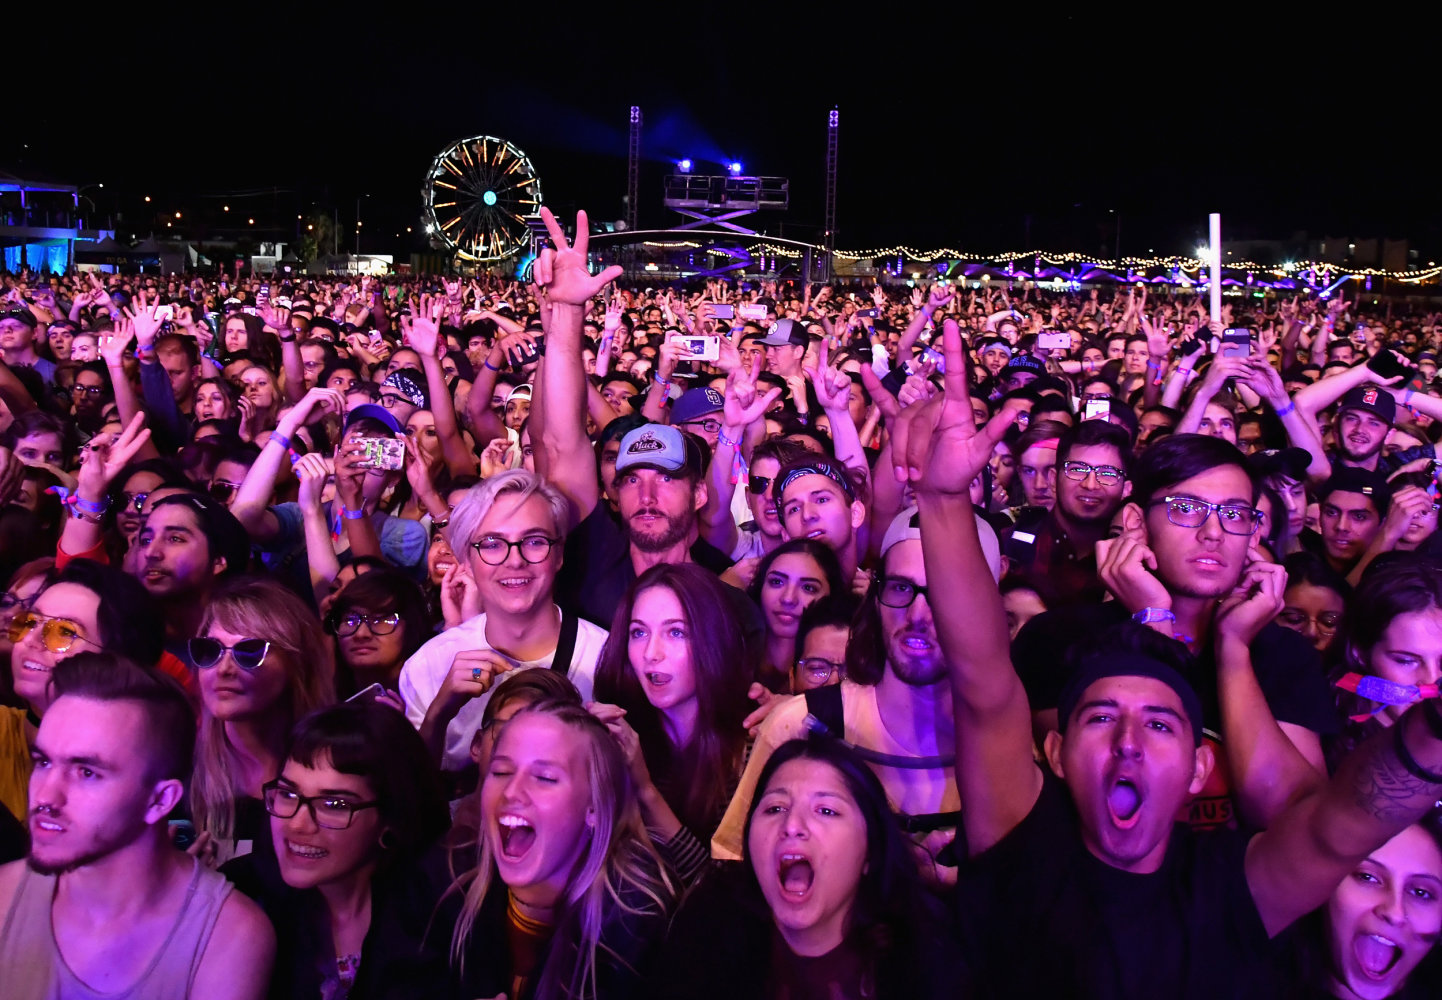 Police believe Las Vegas shooter planned to attack another music festival